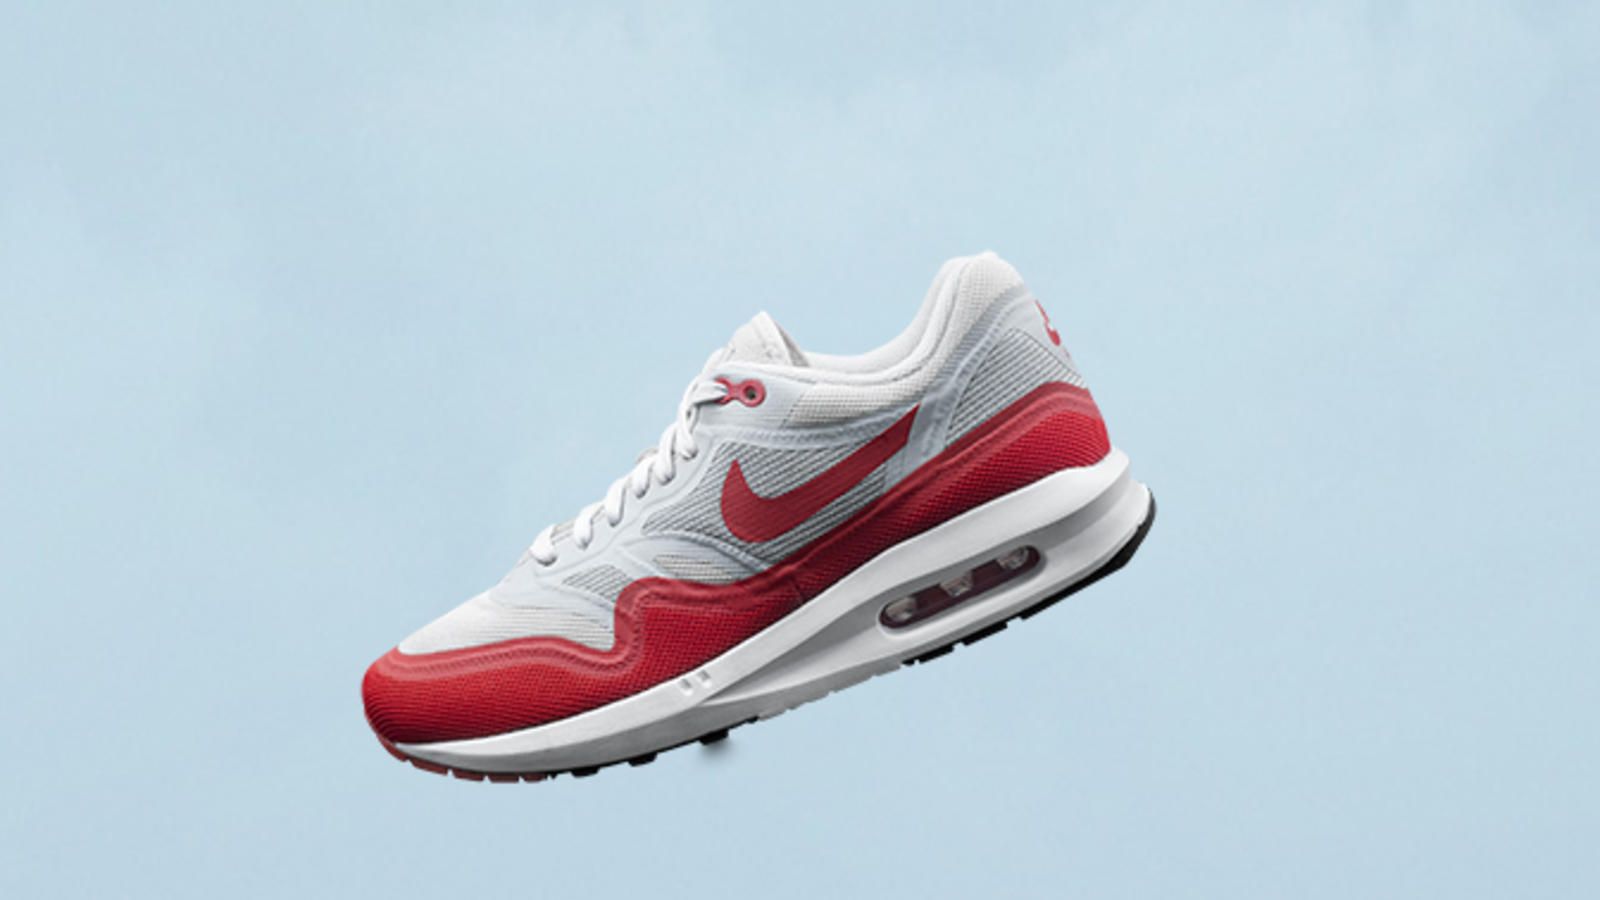 wholesale dealer b4cd7 74ac0 discount code for nike air kit qs 526628012cprem 9a2c6 305bd official  store air max lunar1 2014 lunarlon cushioning changed the world of running  the second ...